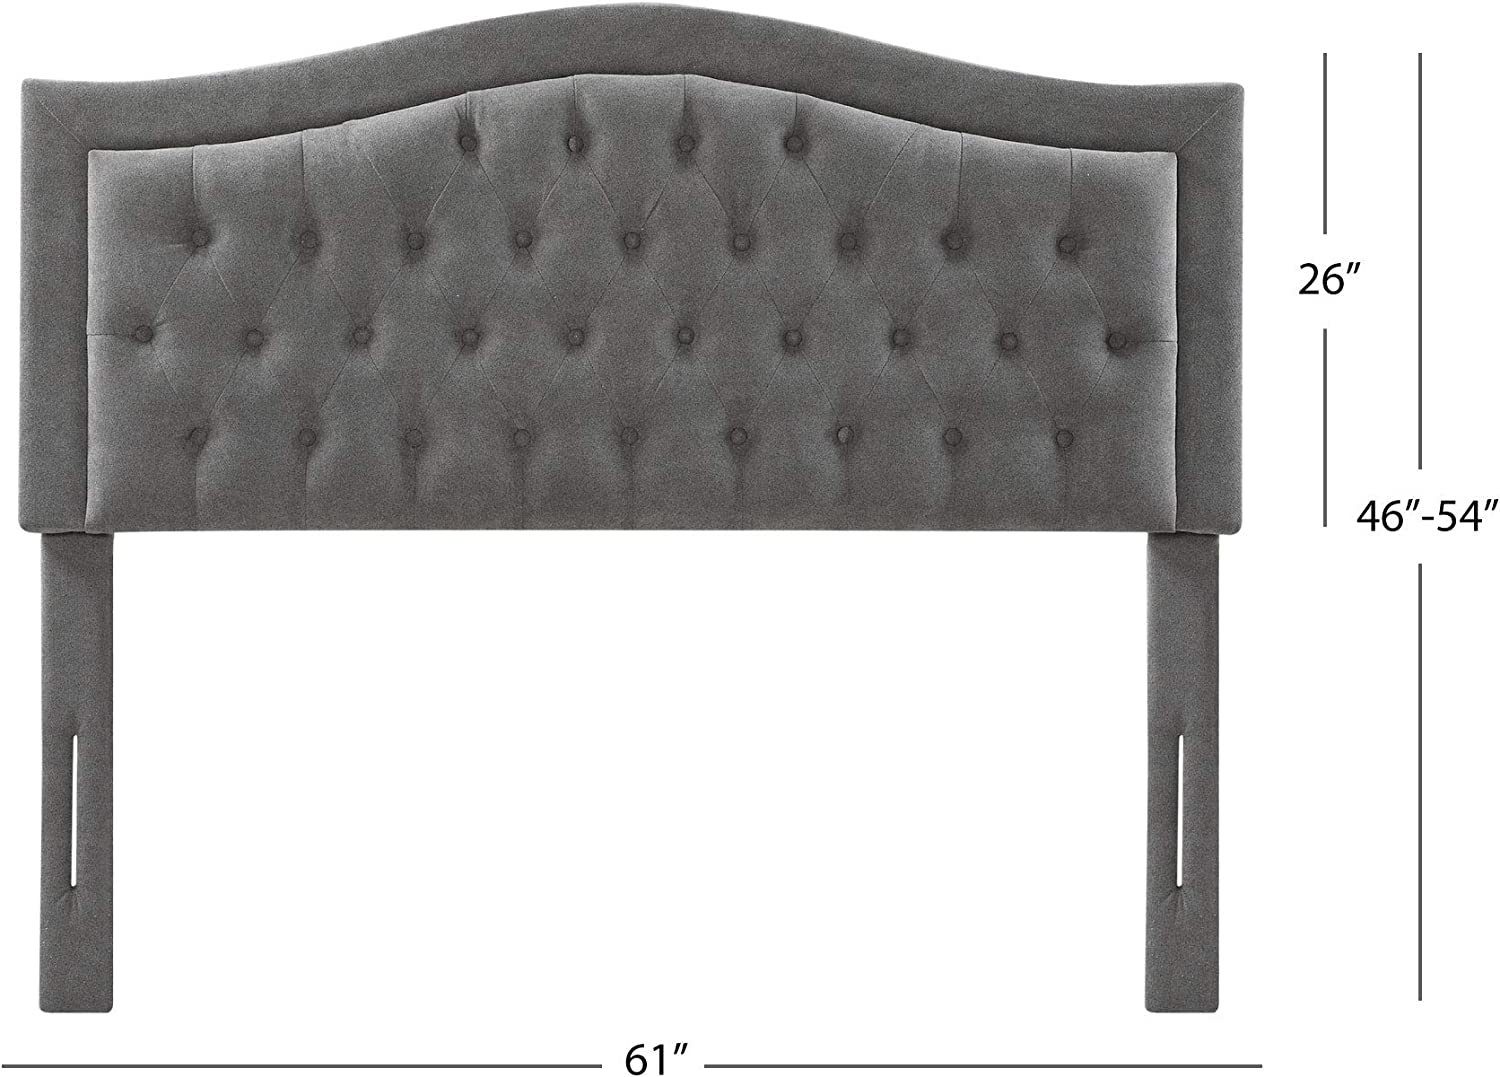 Grey Abbyson Living Full//Queen Size Fabric Upholstered Headboard with Button Tufting